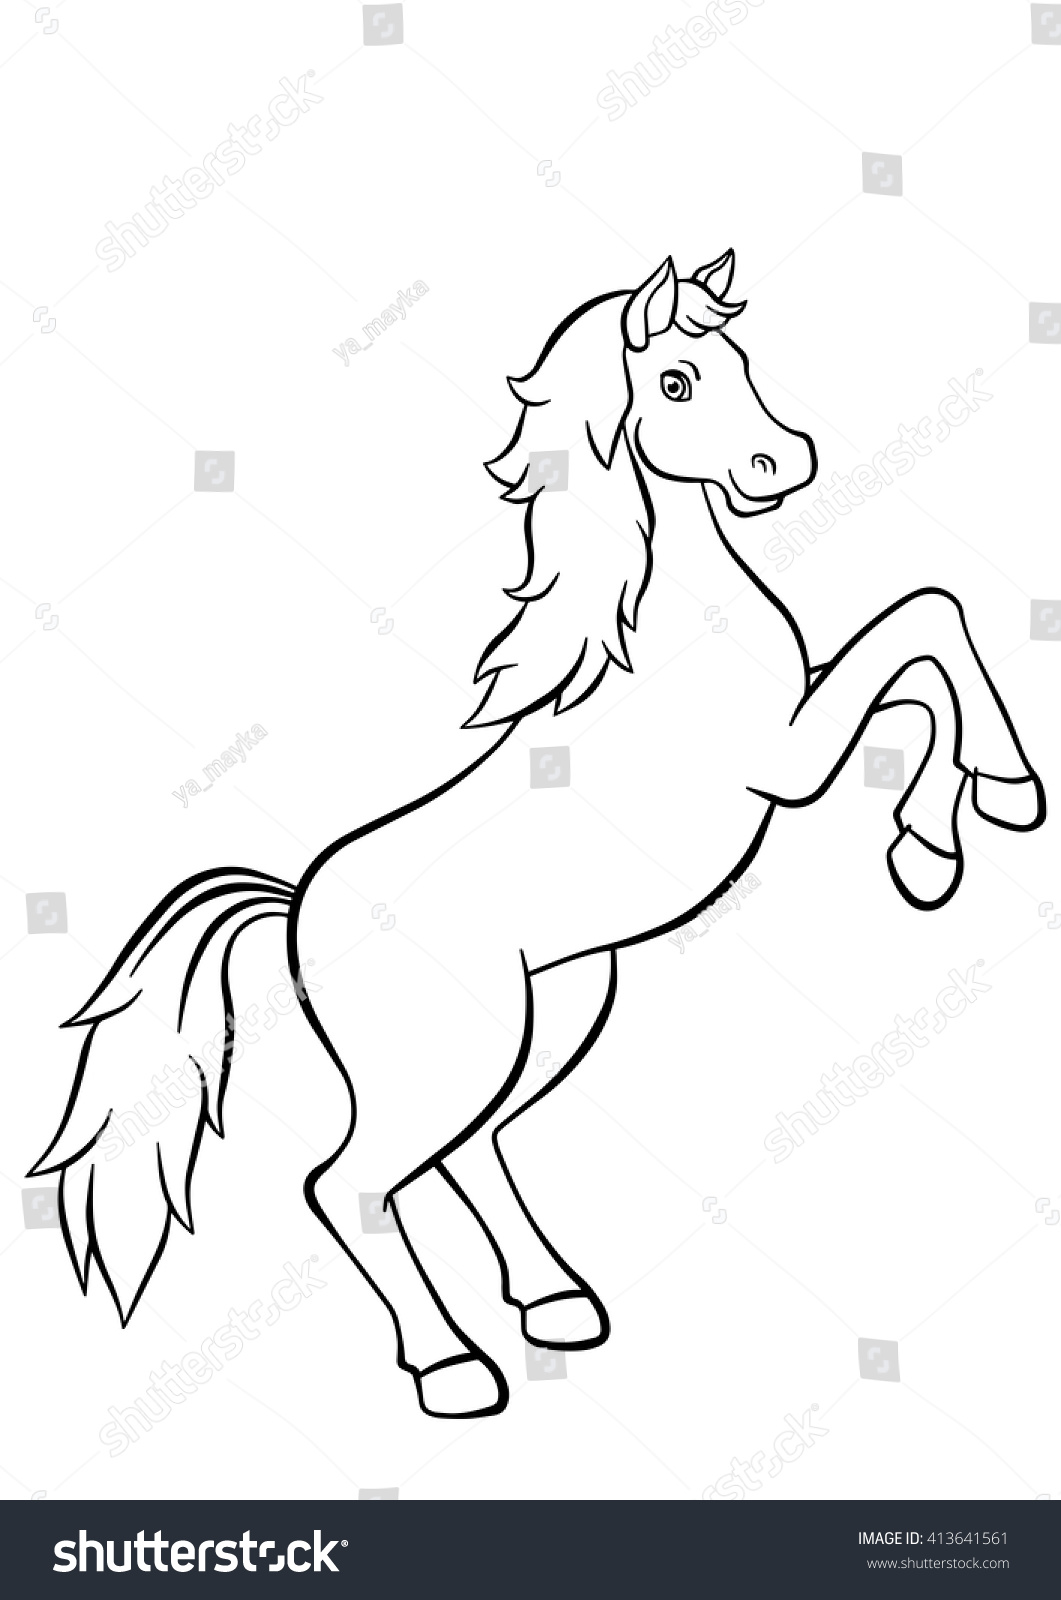 Coloring Pages Animals Cute Horse Jumps Stock Vector 413641561 ...